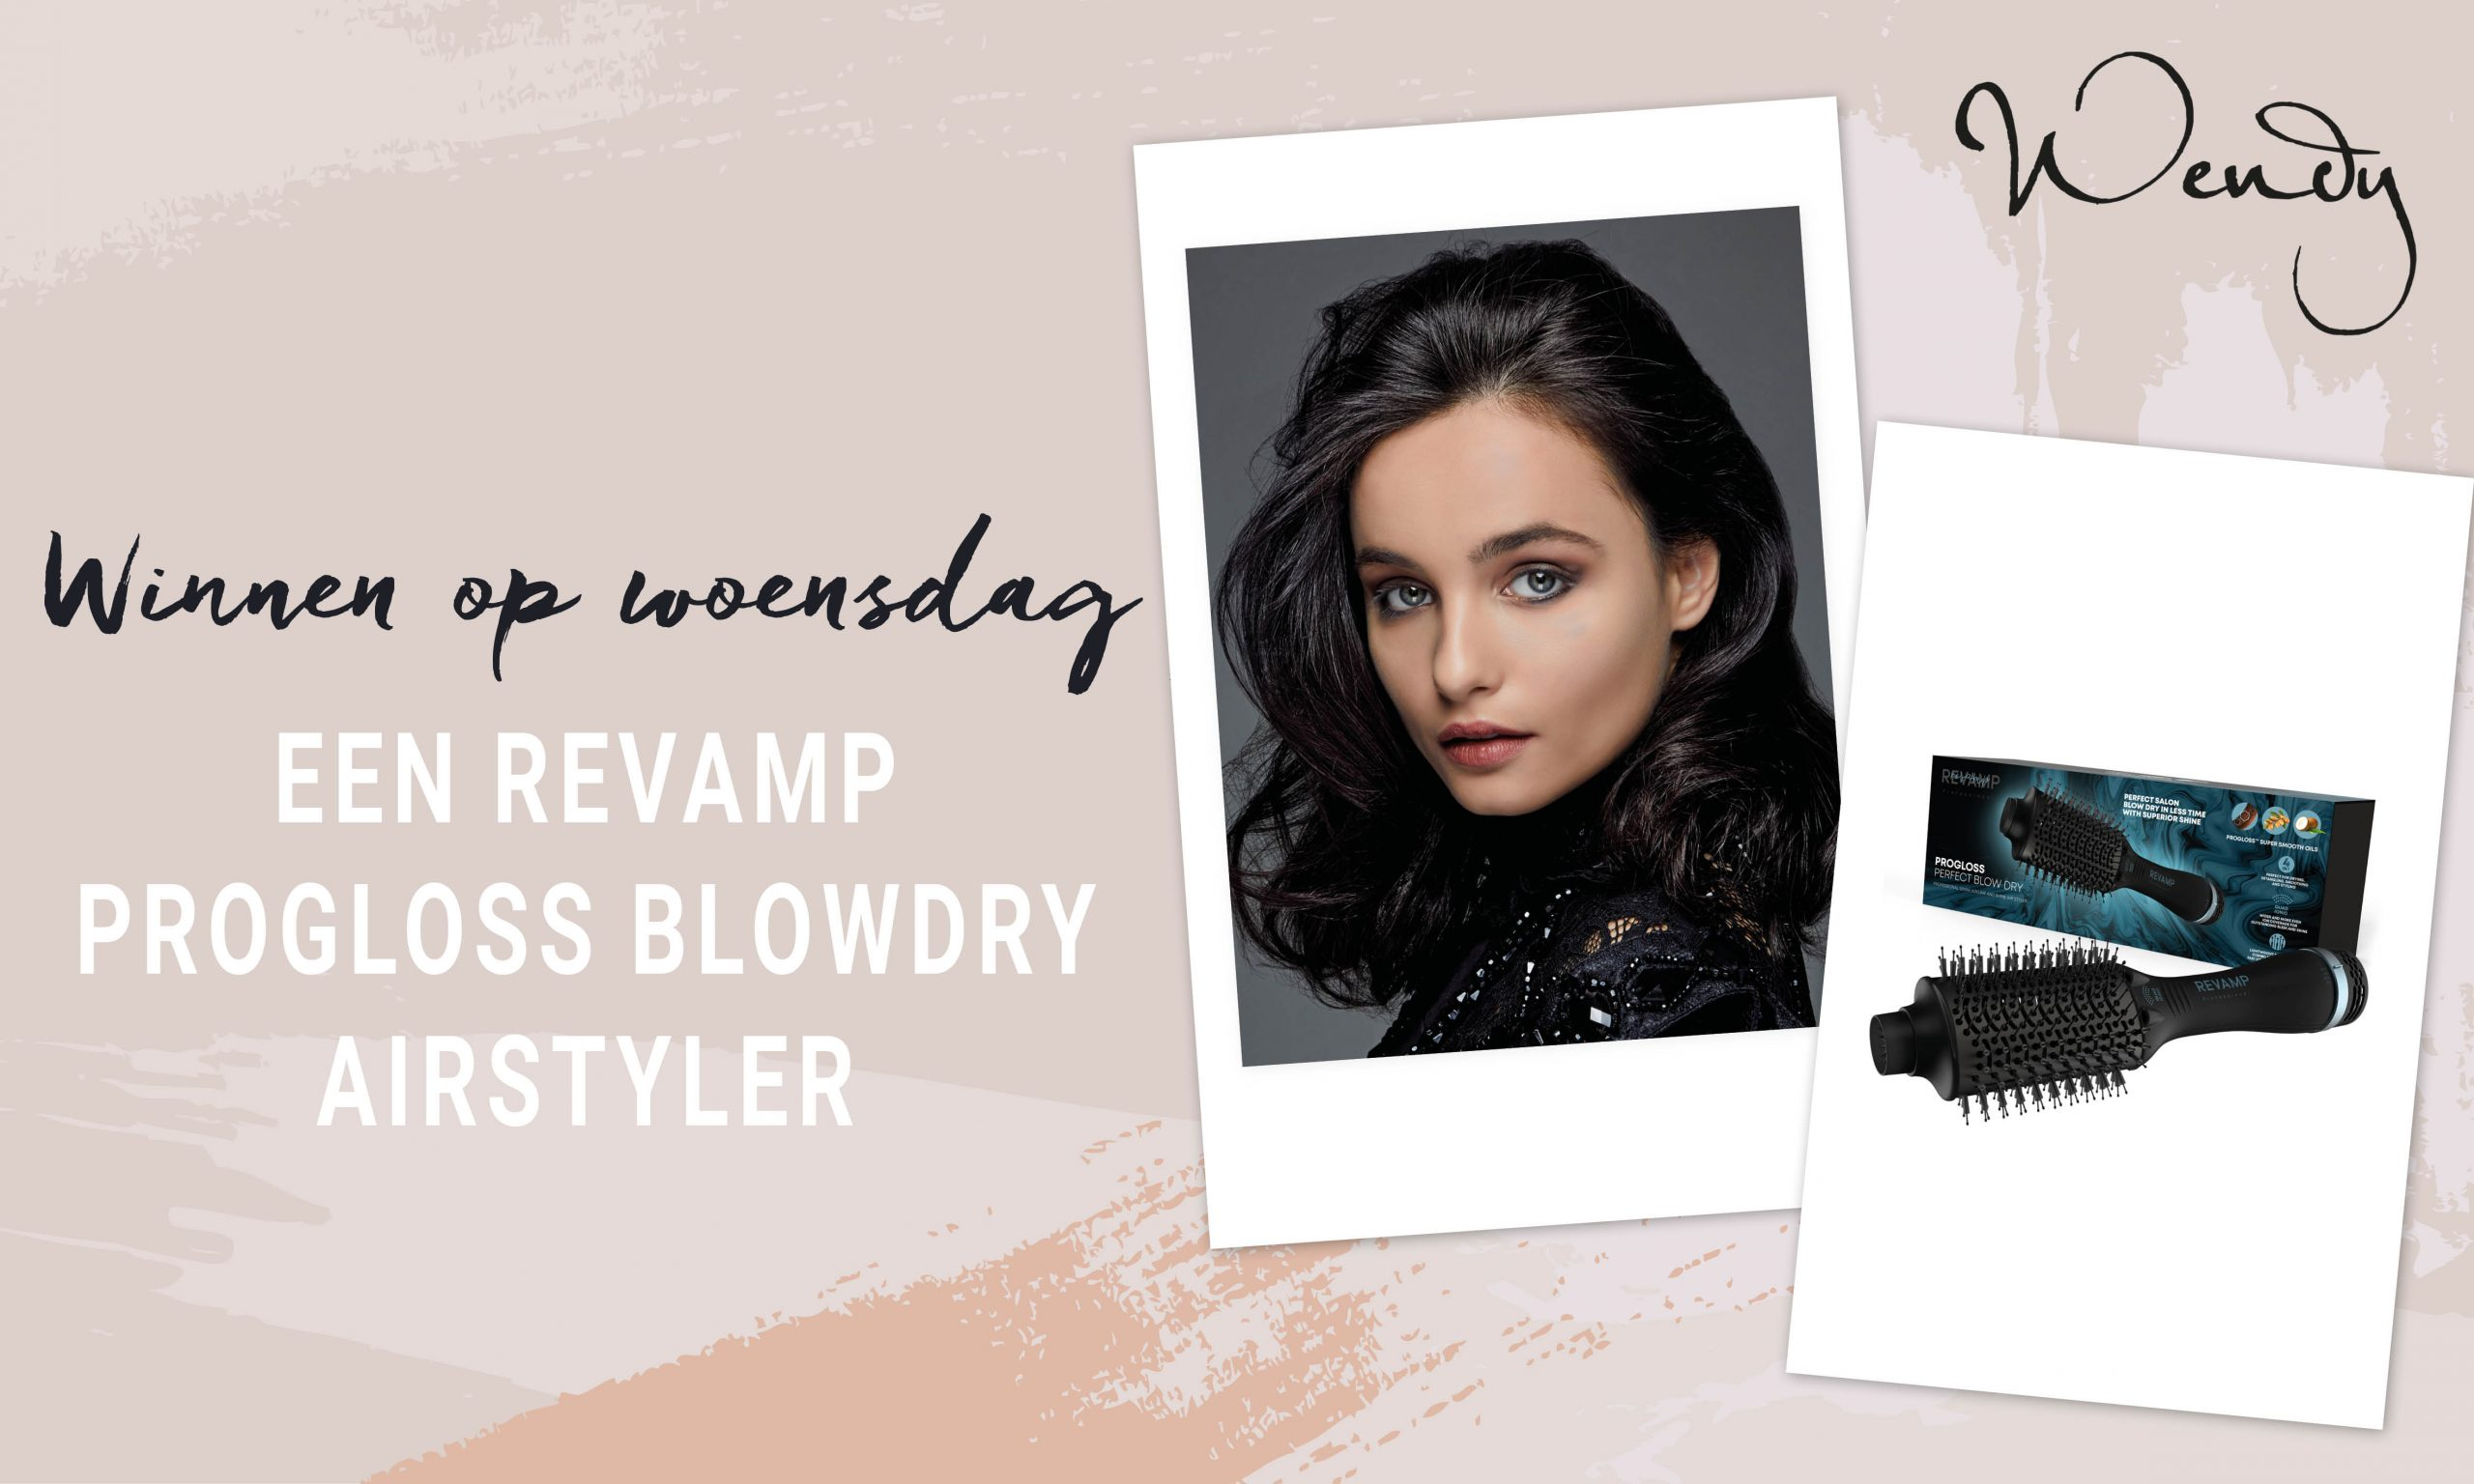 Blowdry Airstyler